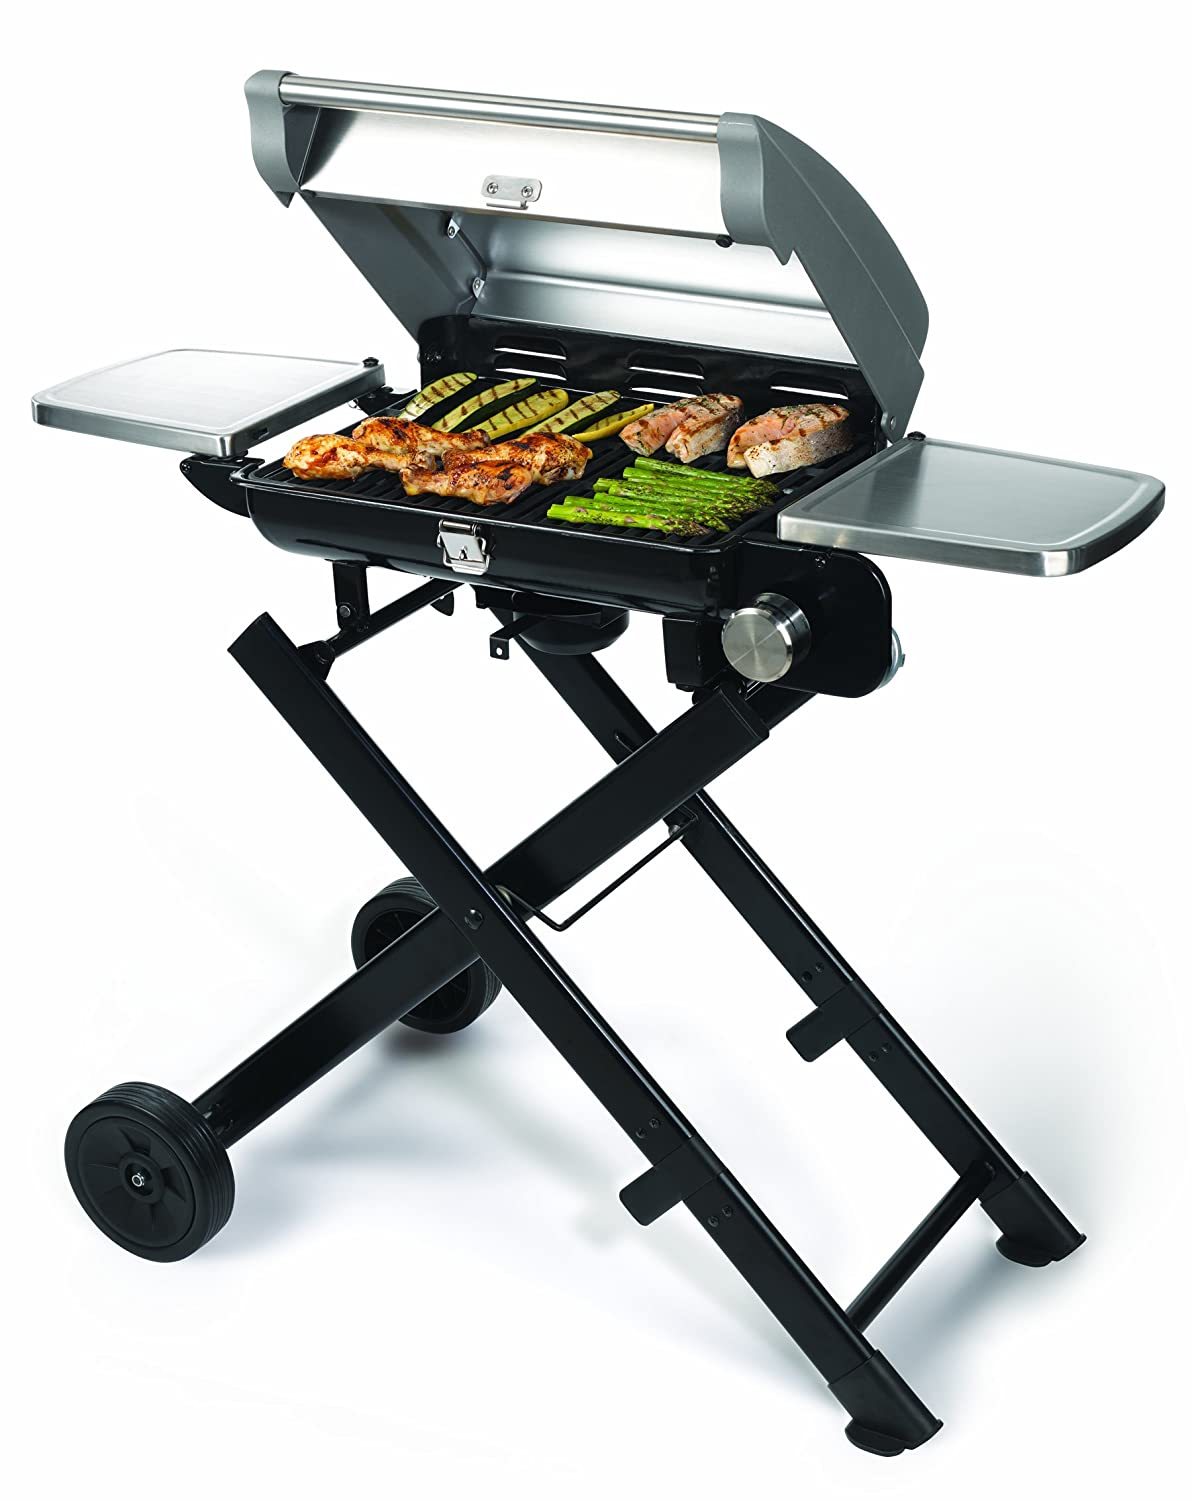 Cuisinart CGG-240 All Foods Roll Away Gas Grill